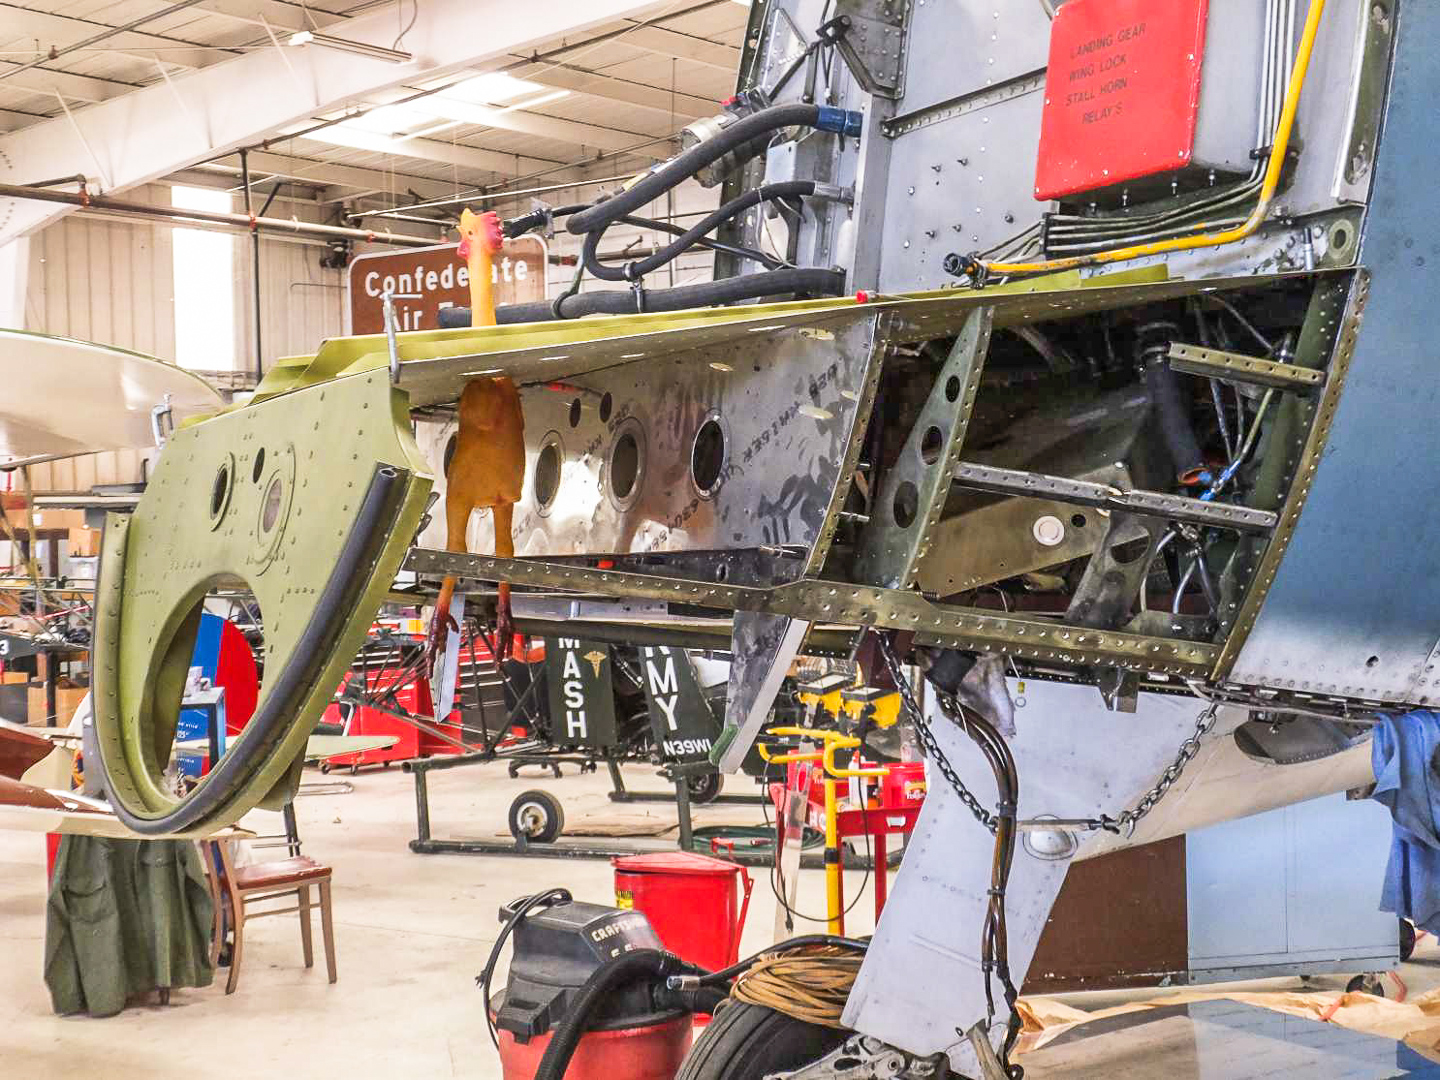 The forward fuselage and engine bay also required a lot of work, which is ongoing. Here you can see the repairs to the lower forward fuselage and firewall. (photo via CAF)